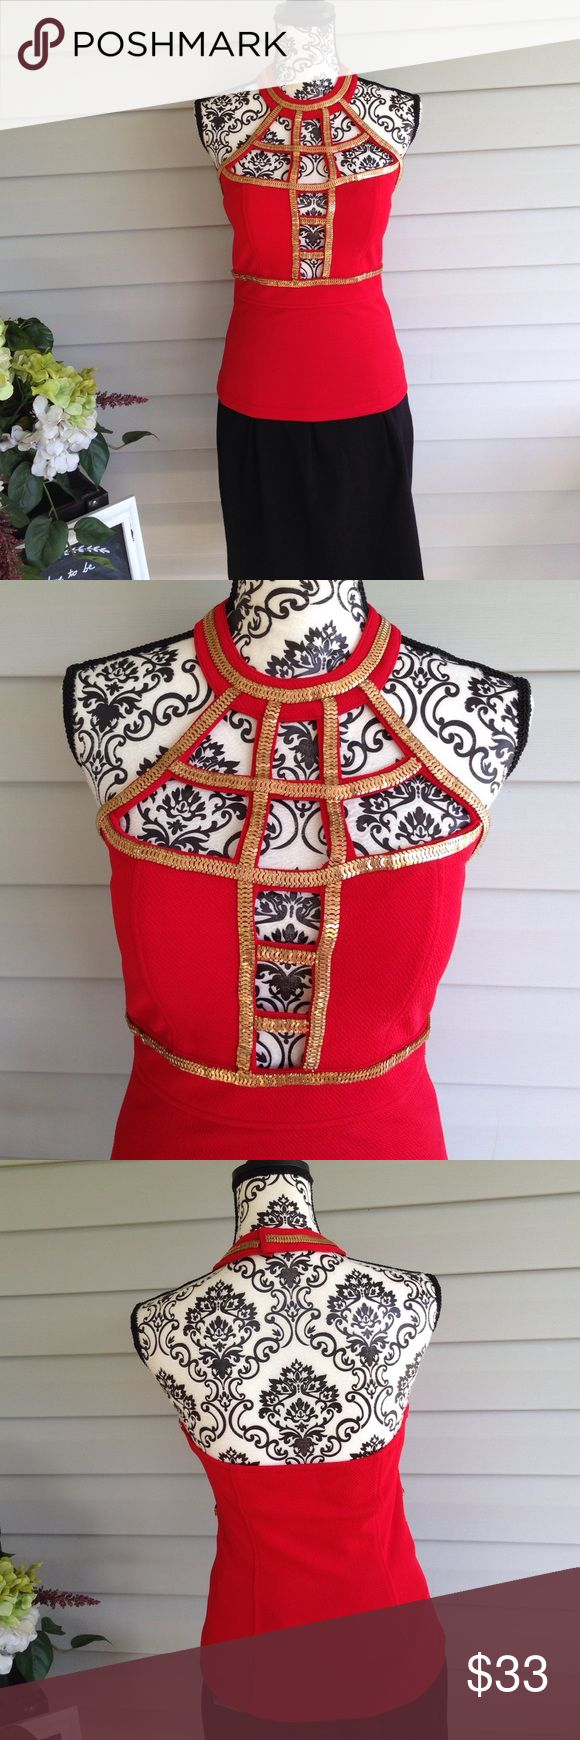 Red & Gold Birdcage Nov Blouse Medium Red with gold metal accent, fastens behind the neck and a halter style leaving the back area backless. Very fitted into height. Bright red and gold by NOV Nov Tops Blouses